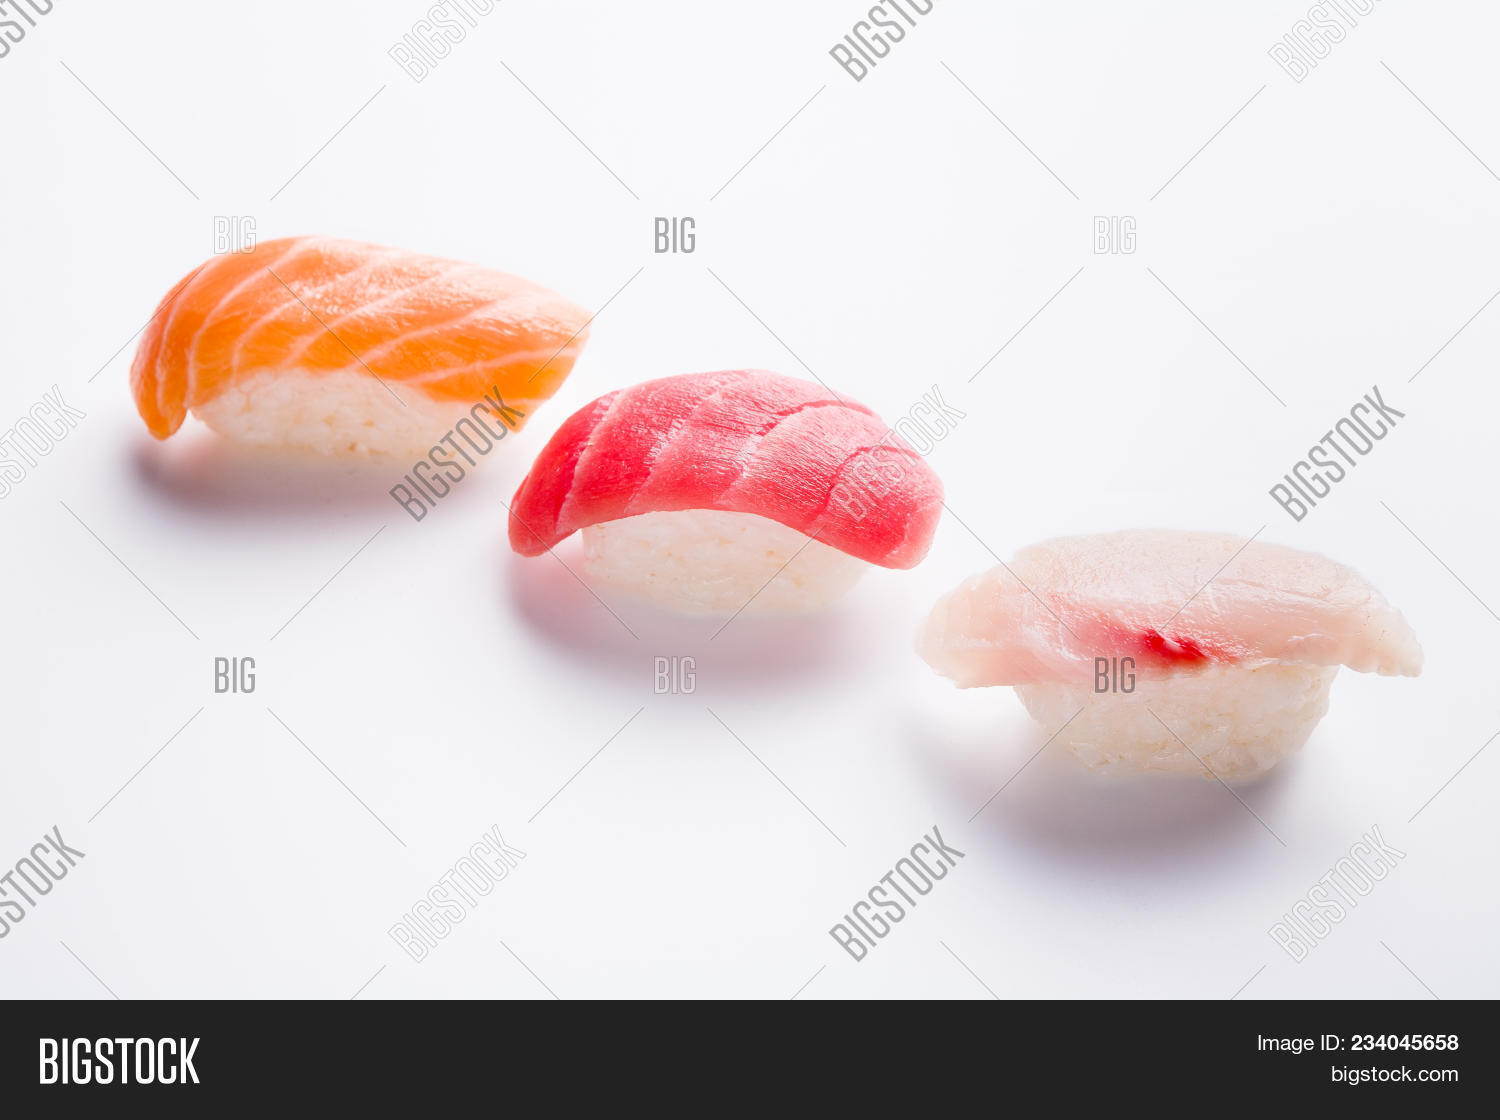 Japanese Traditional Image Photo Free Trial Bigstock